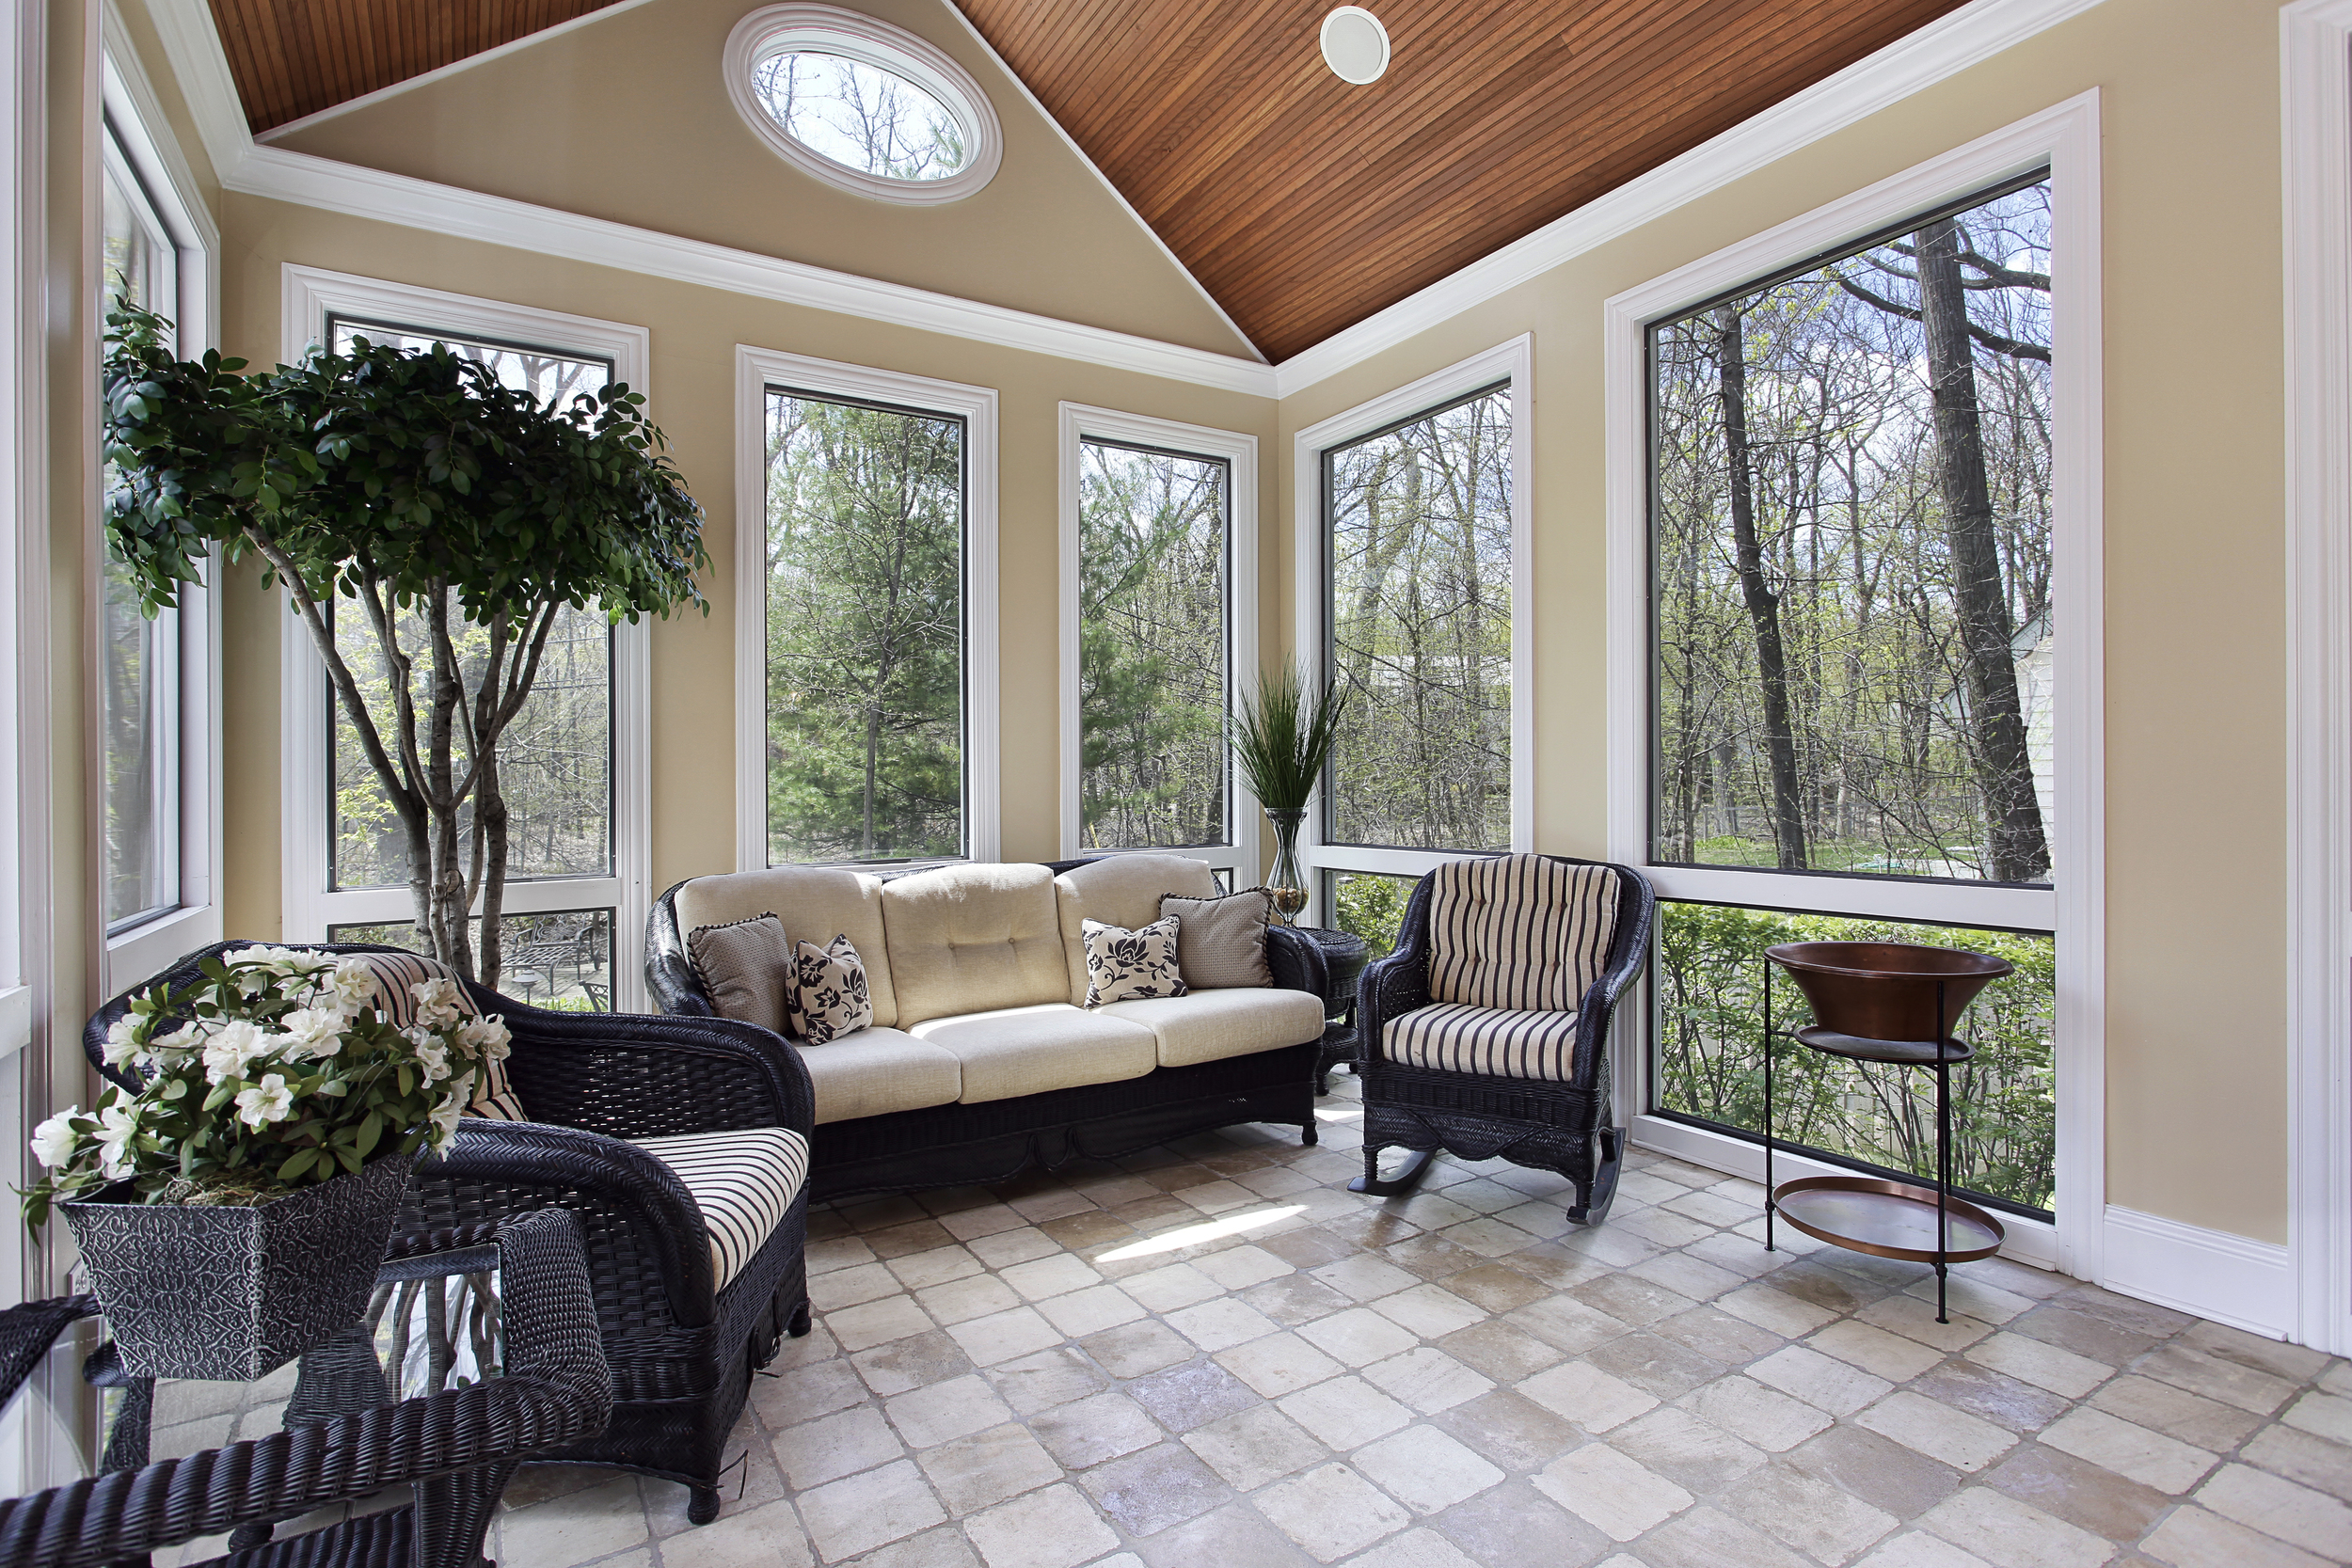 Small sunroom with tile, dark rattan couch and chairs, tan paint, wood ceiling.